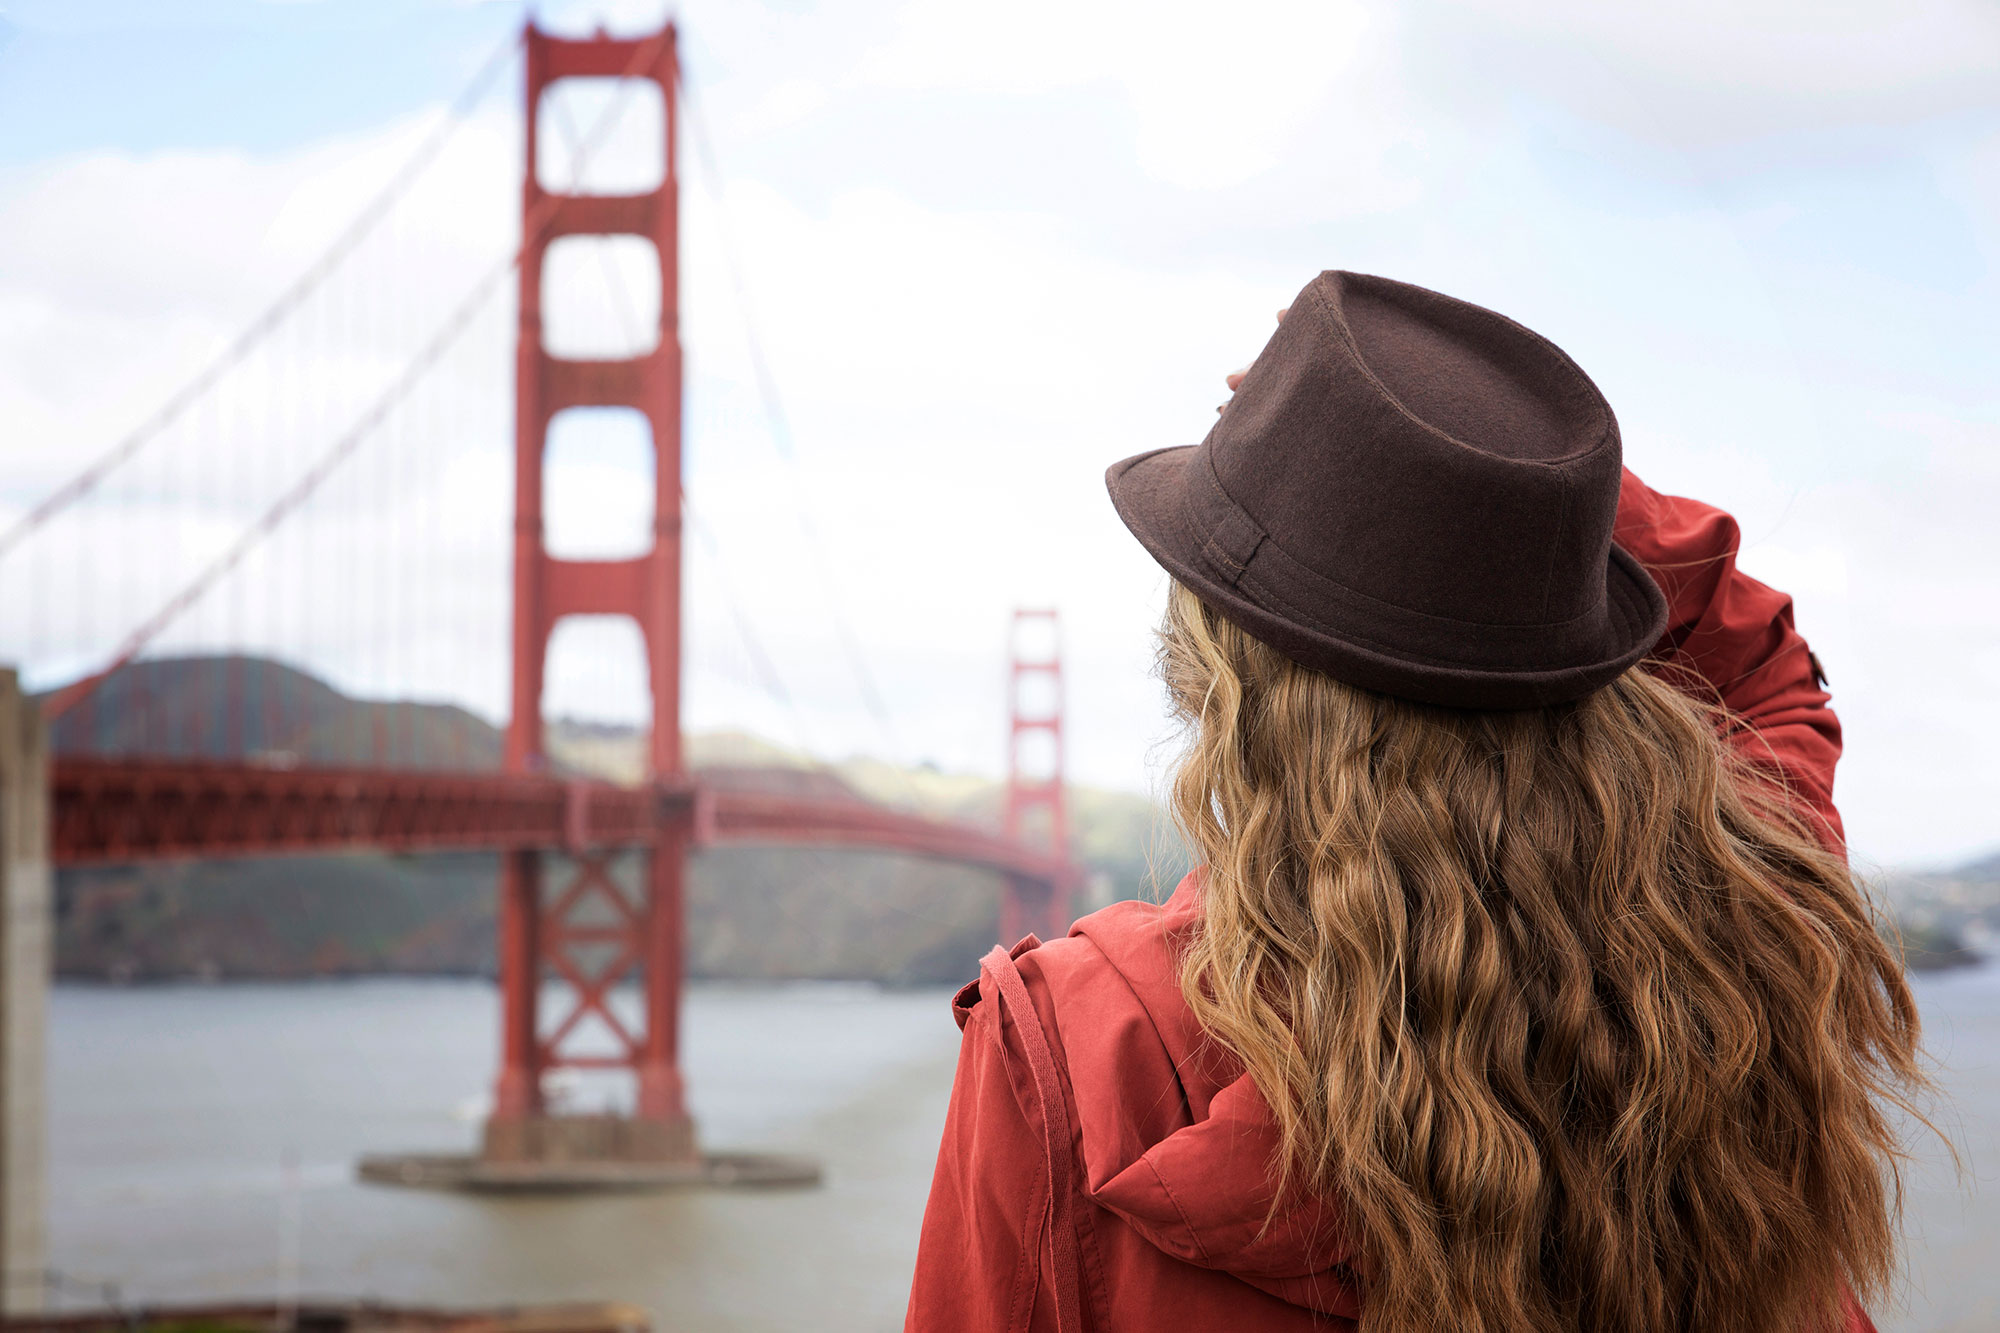 Bridge Rail Foundation - Every year 20 or more families are devastated by suicide from the Golden Gate Bridge. The bridge remains the number one suicide destination location in the world.